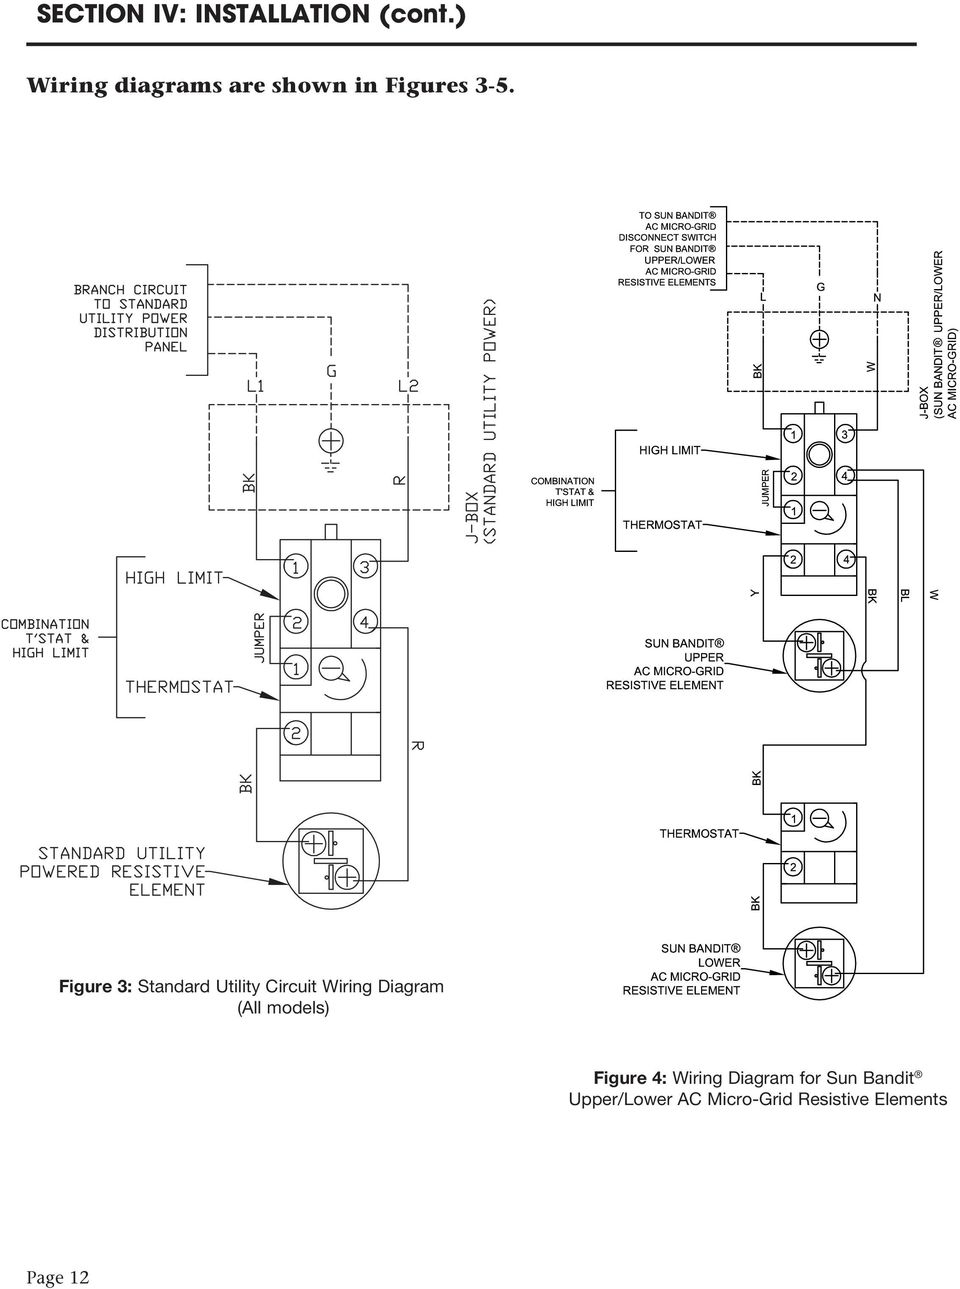 Figure 3: Standard Utility Circuit Wiring Diagram (All